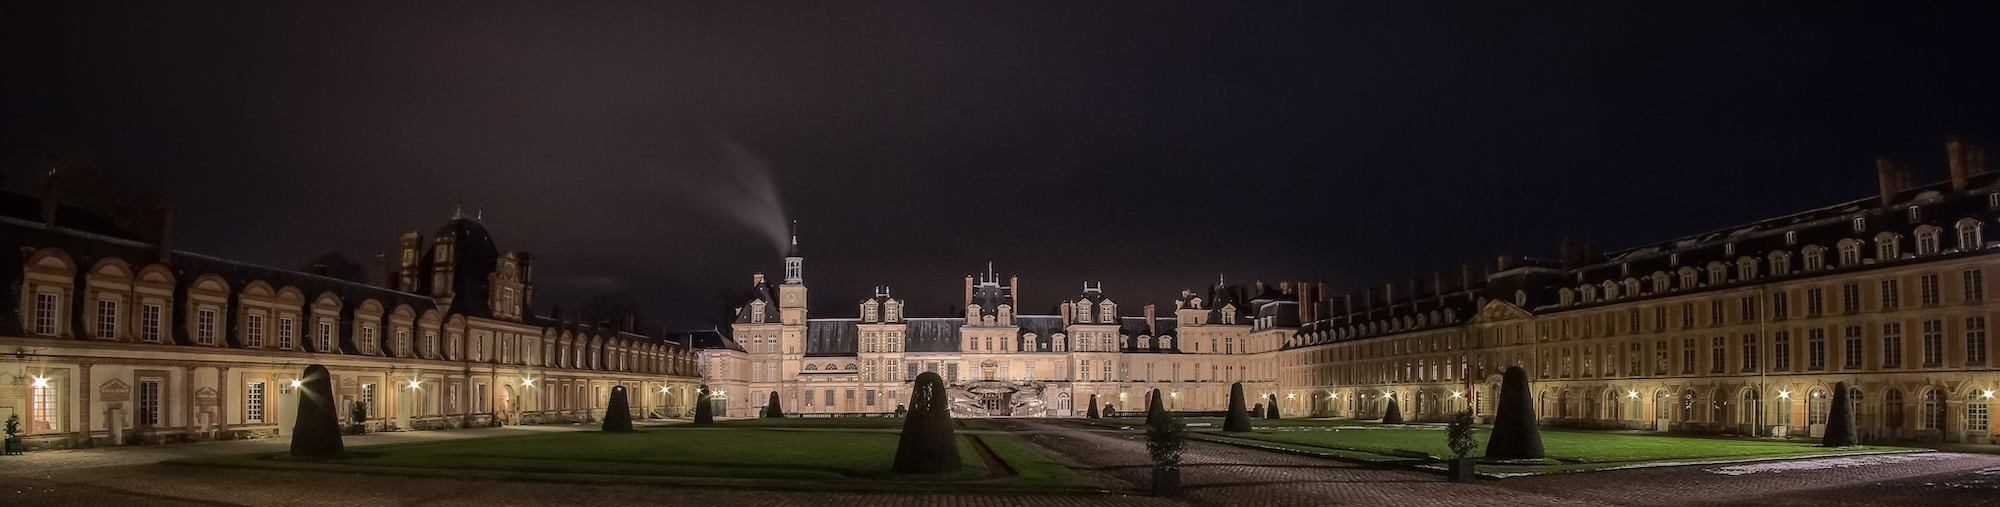 Château de Fontainebleau by night; it's beautifully lit.